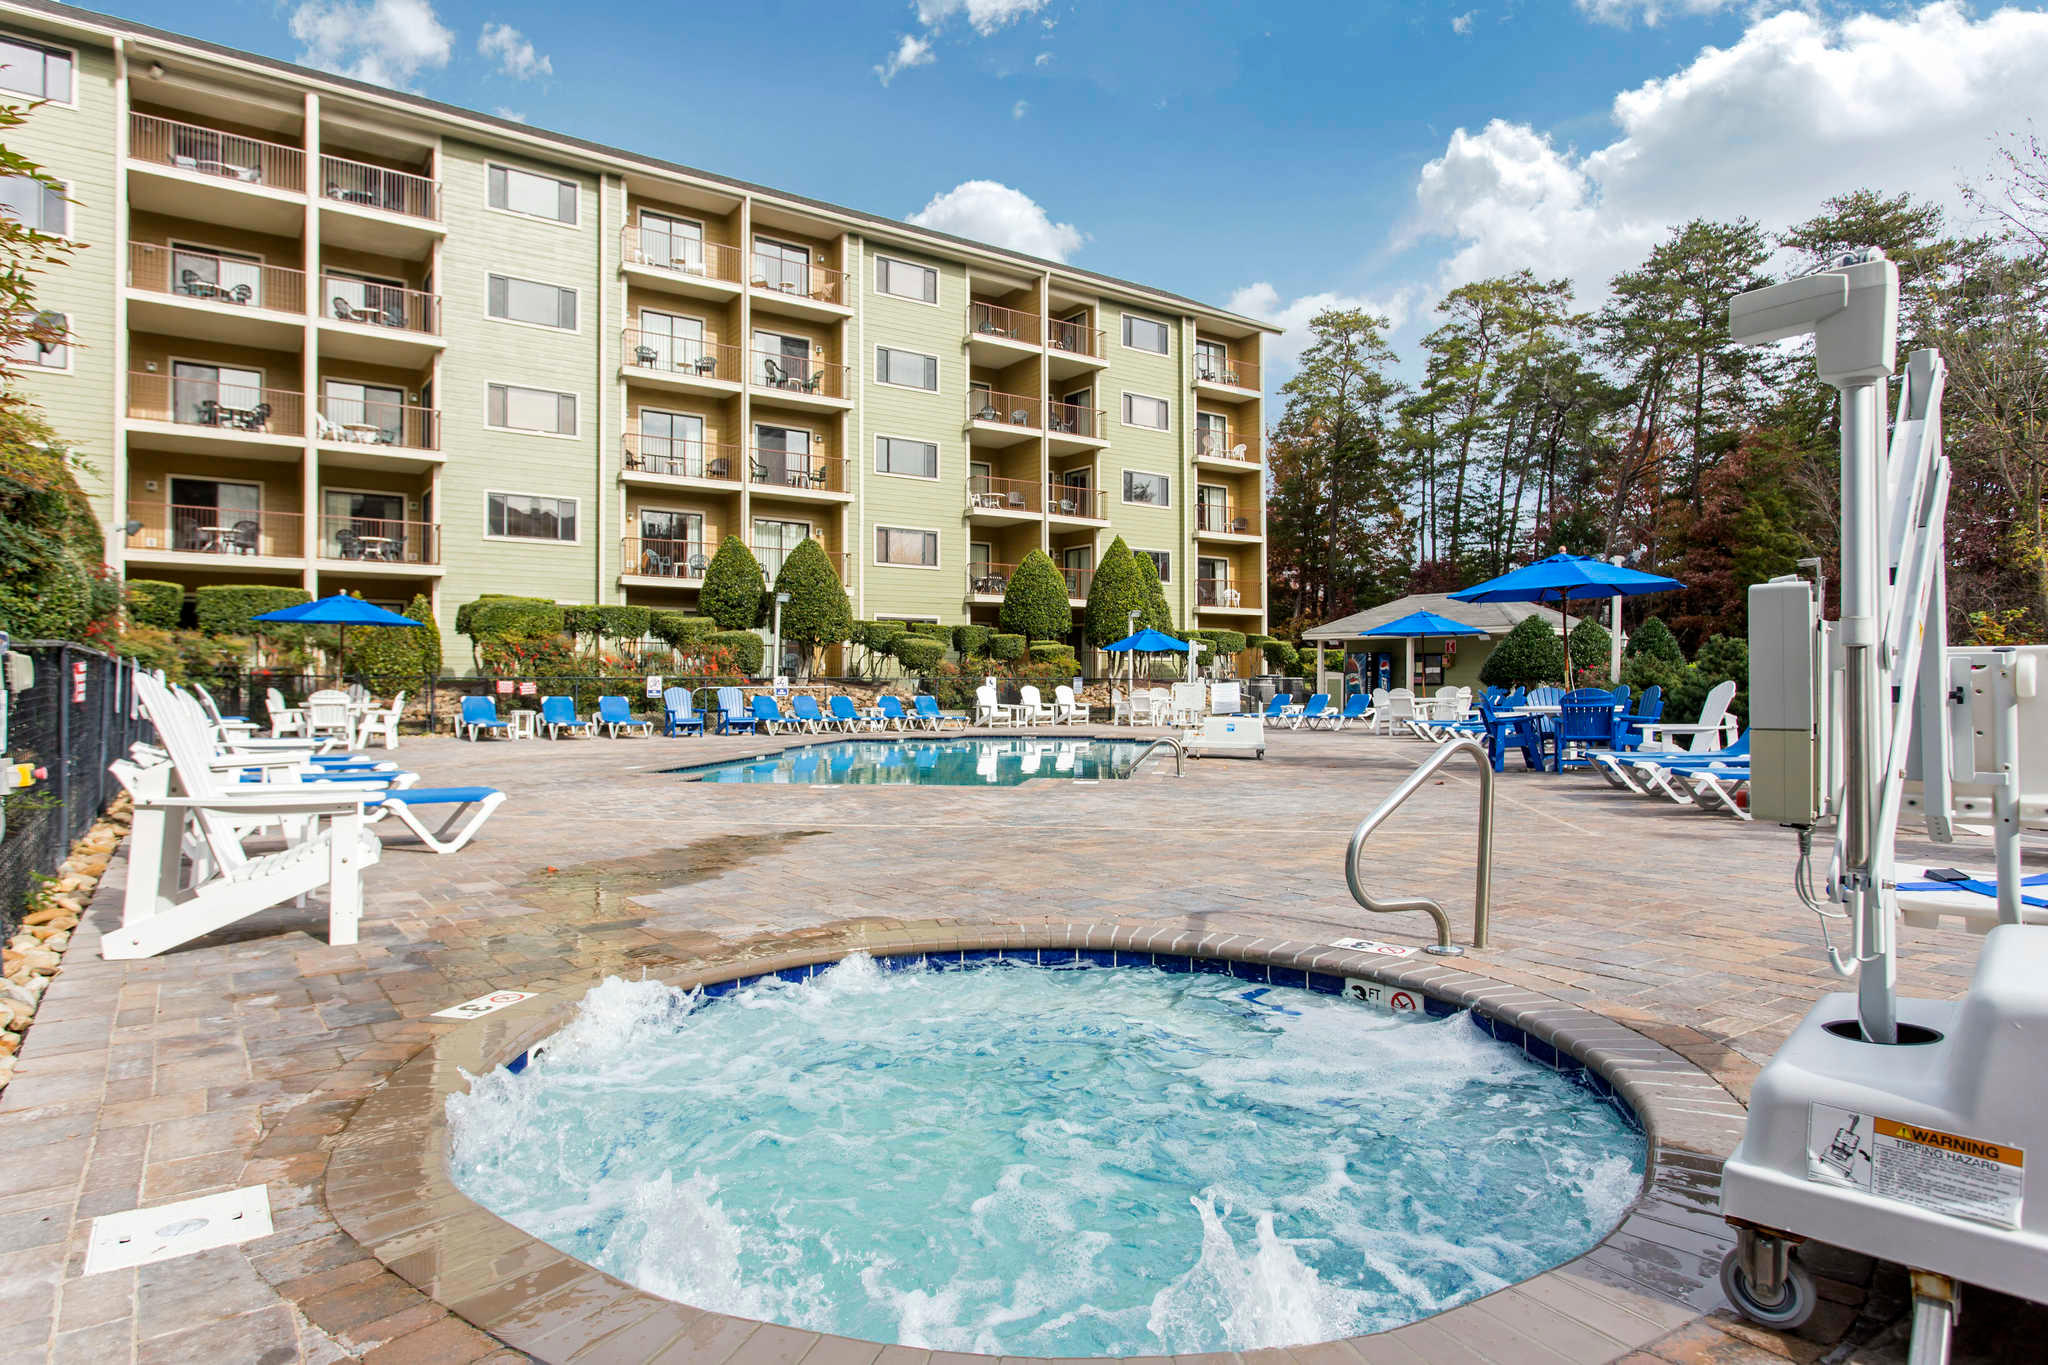 Bluegreen Vacations Laurel Crest, an Ascend Resort image 11